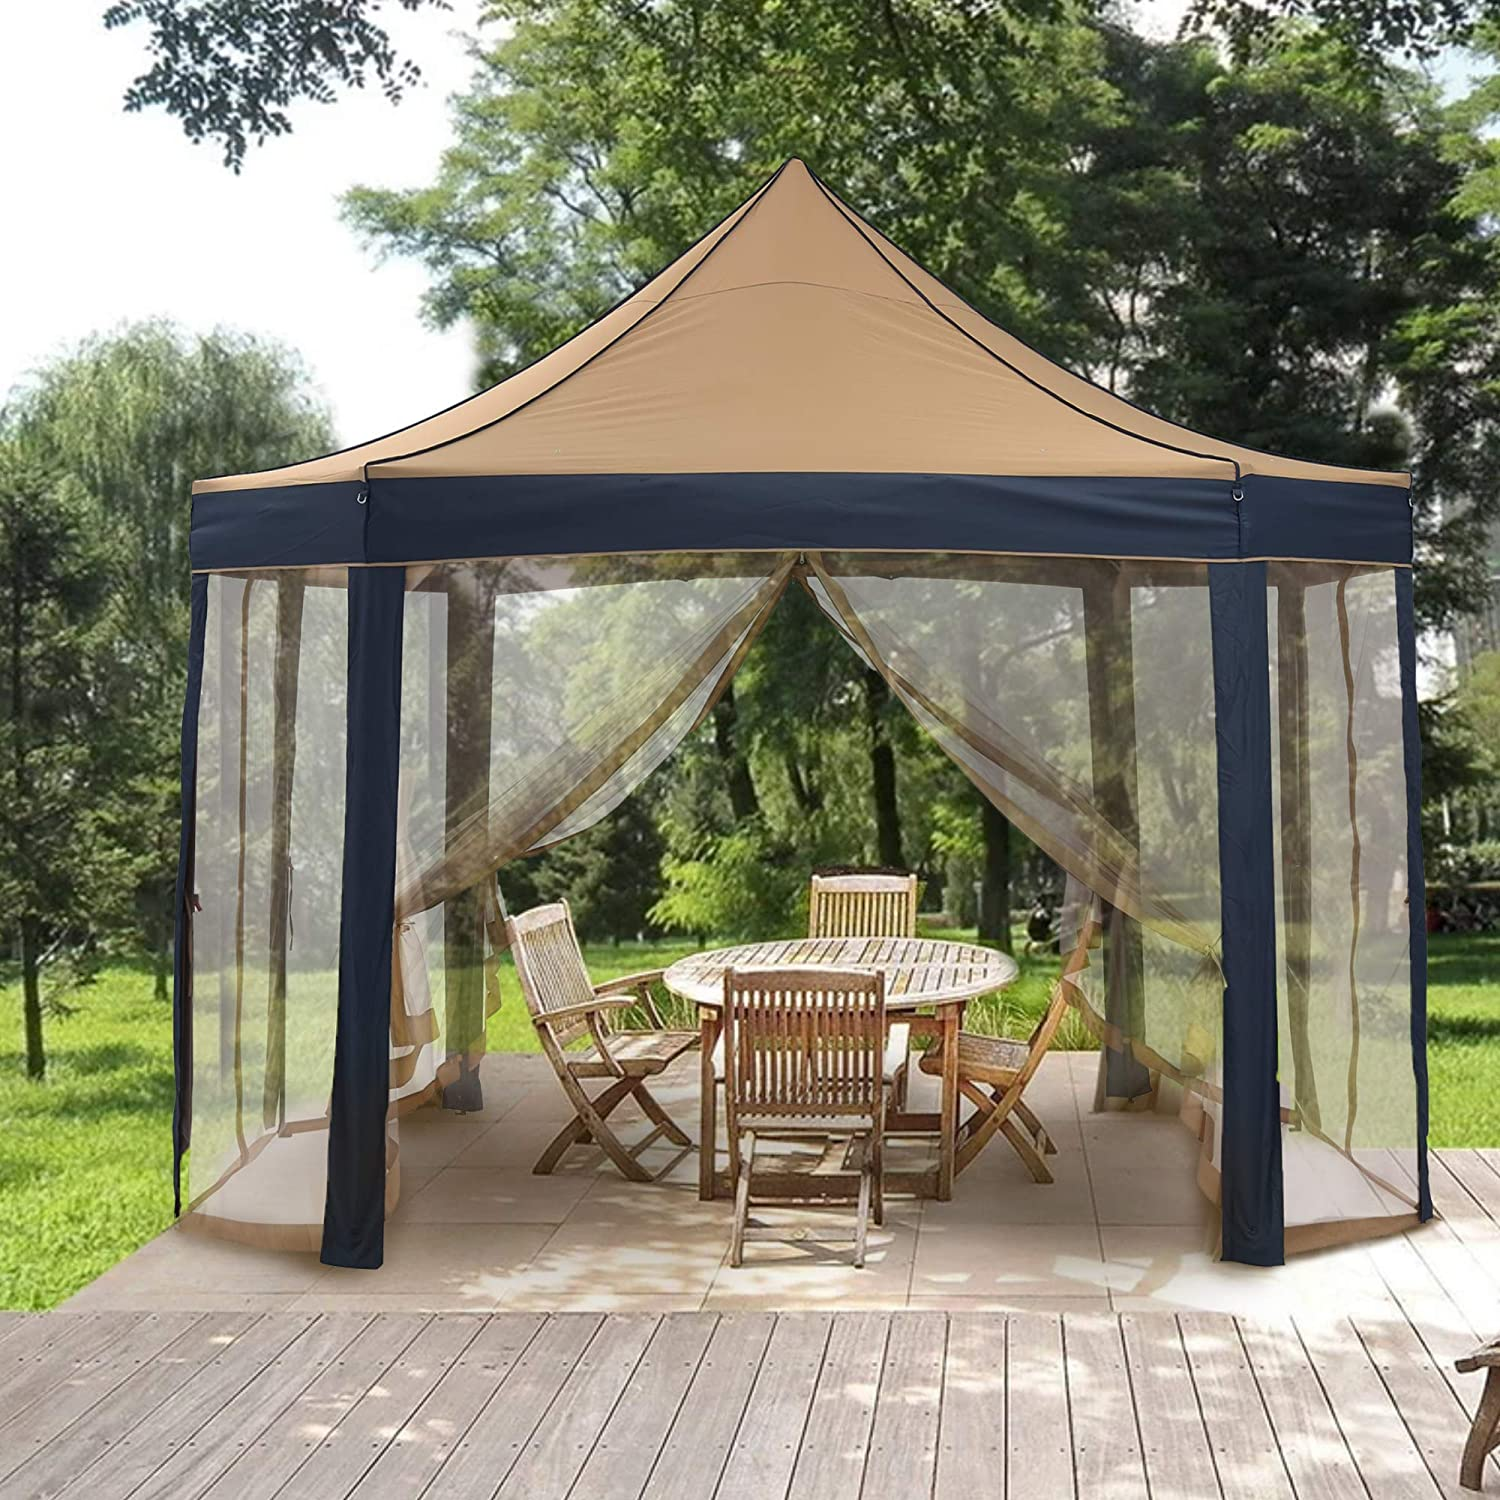 HYD-Parts Outdoor 8-Sided Pop Up Gazebo Canopy Double Top Outdoor Patio Garden Tent Patio Gazebo Shelter with Mosquito Net for Wedding Party (10x13FT)